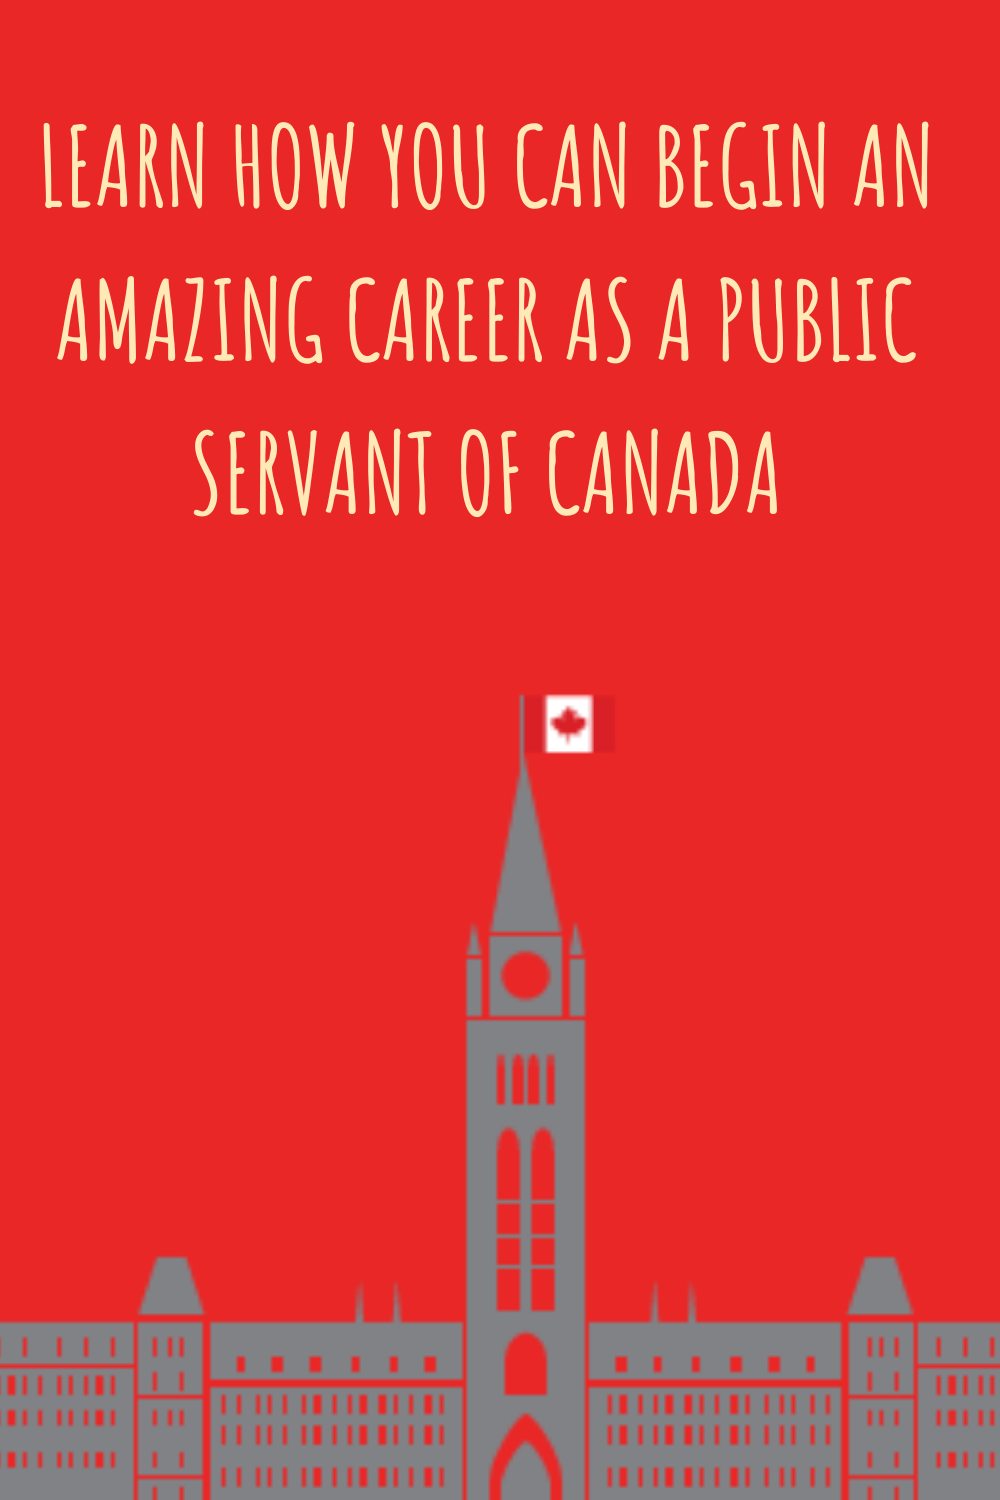 Learn How You Can Begin your Career as a Public Servant in Canada | Job Search